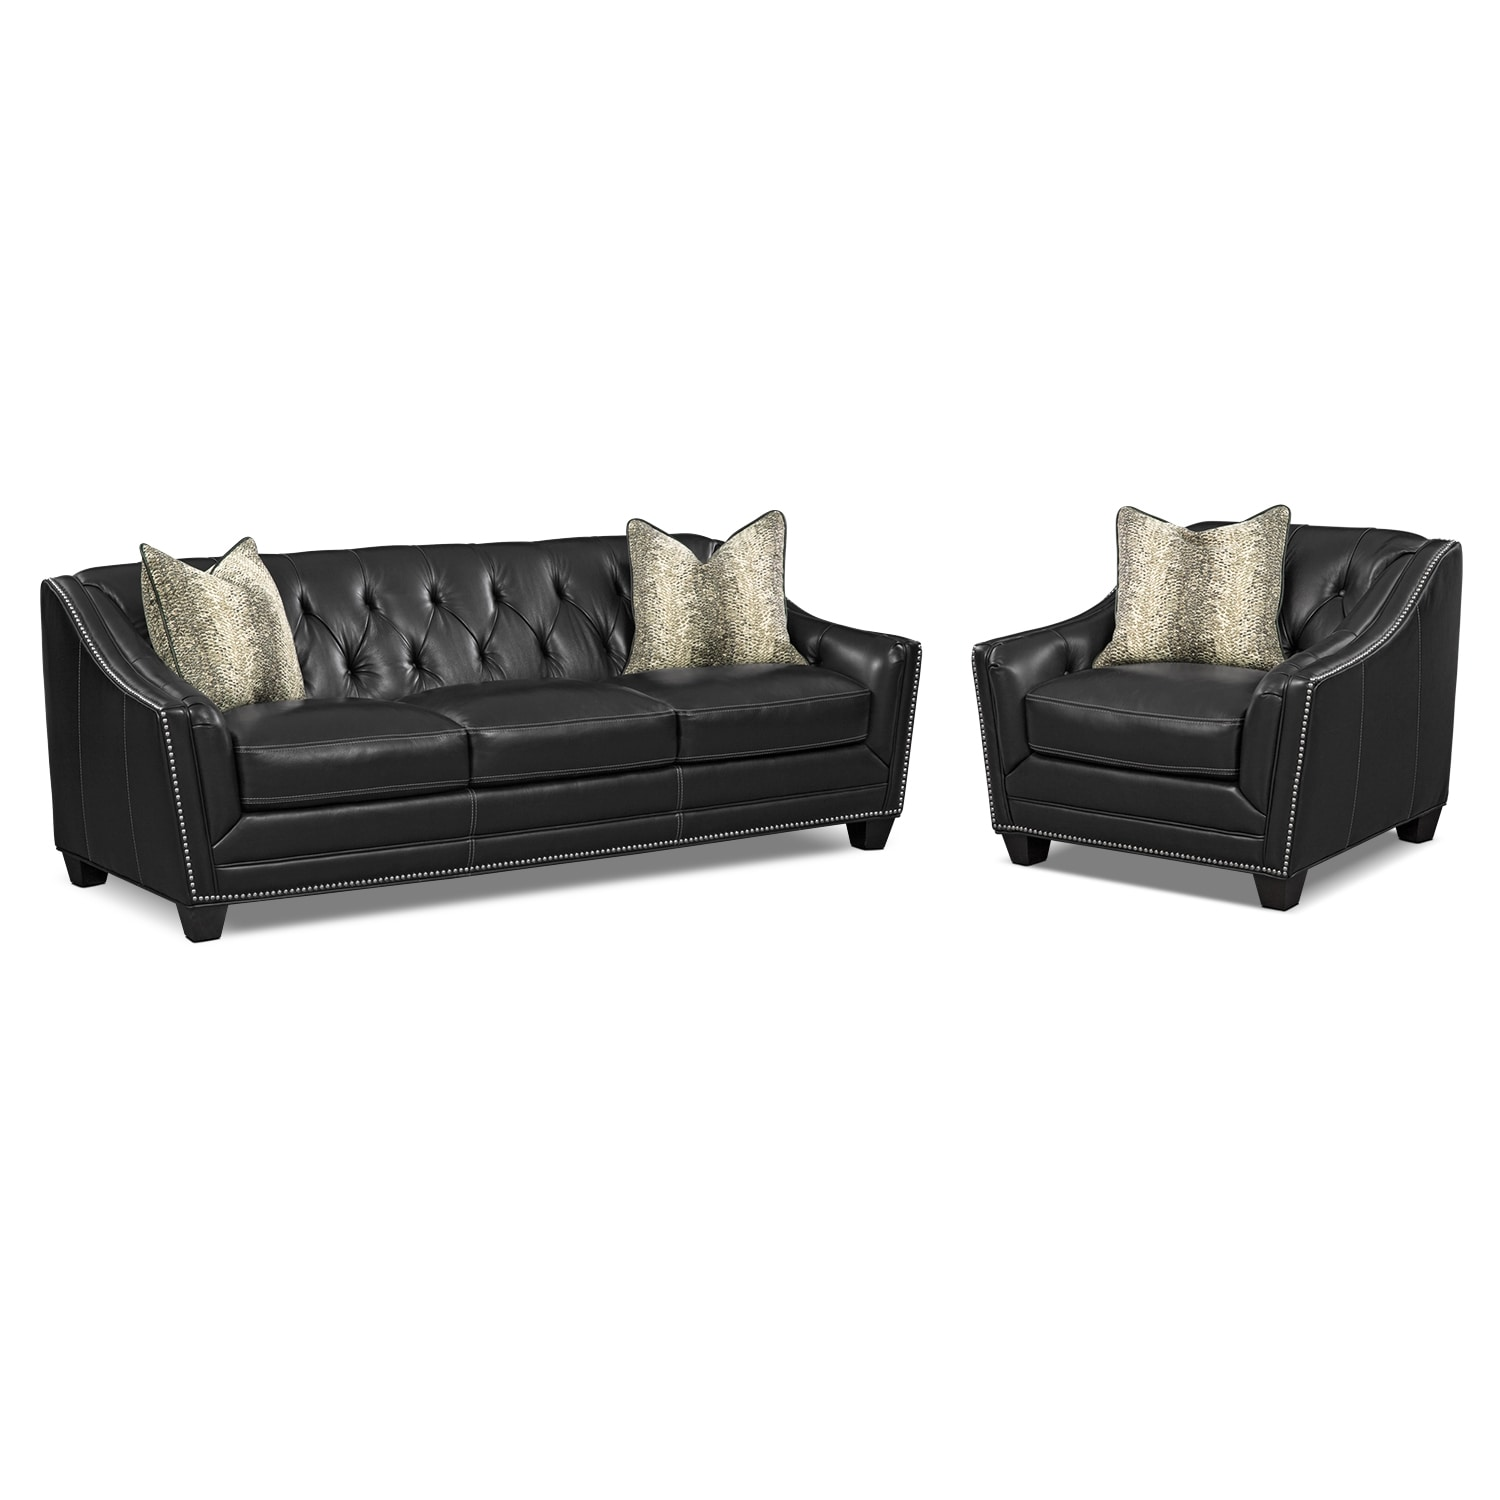 Living Room Furniture - Alexis Midnight 2 Pc. Living Room w/ Chair